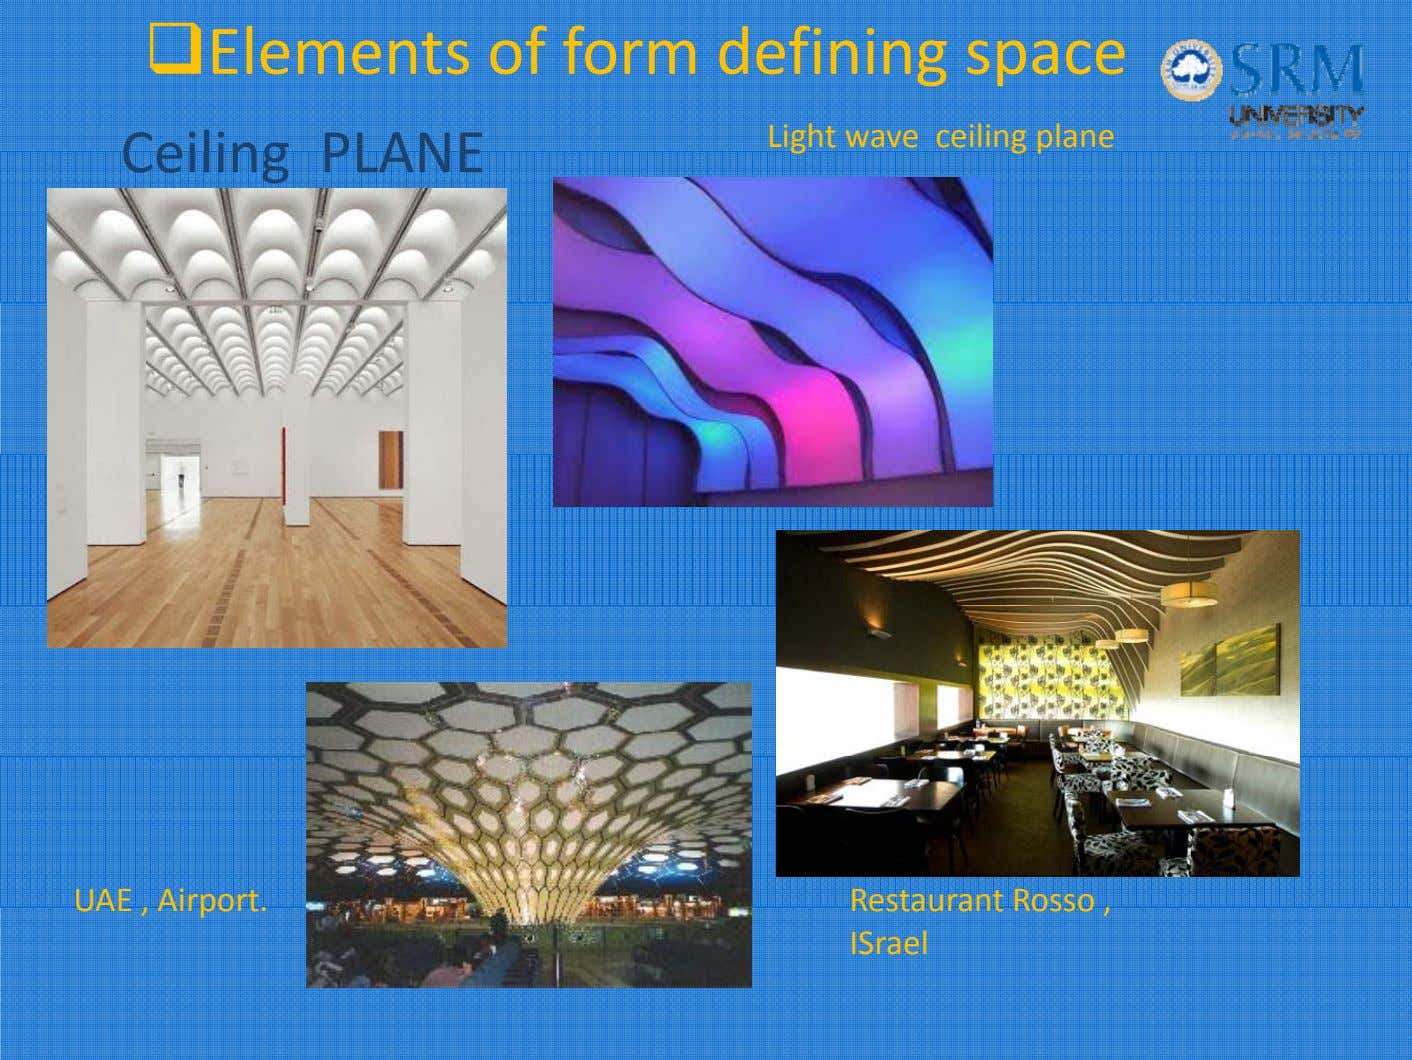 Elements of form defining space Li ght wave ceilin g p lane Cei ing PLANE